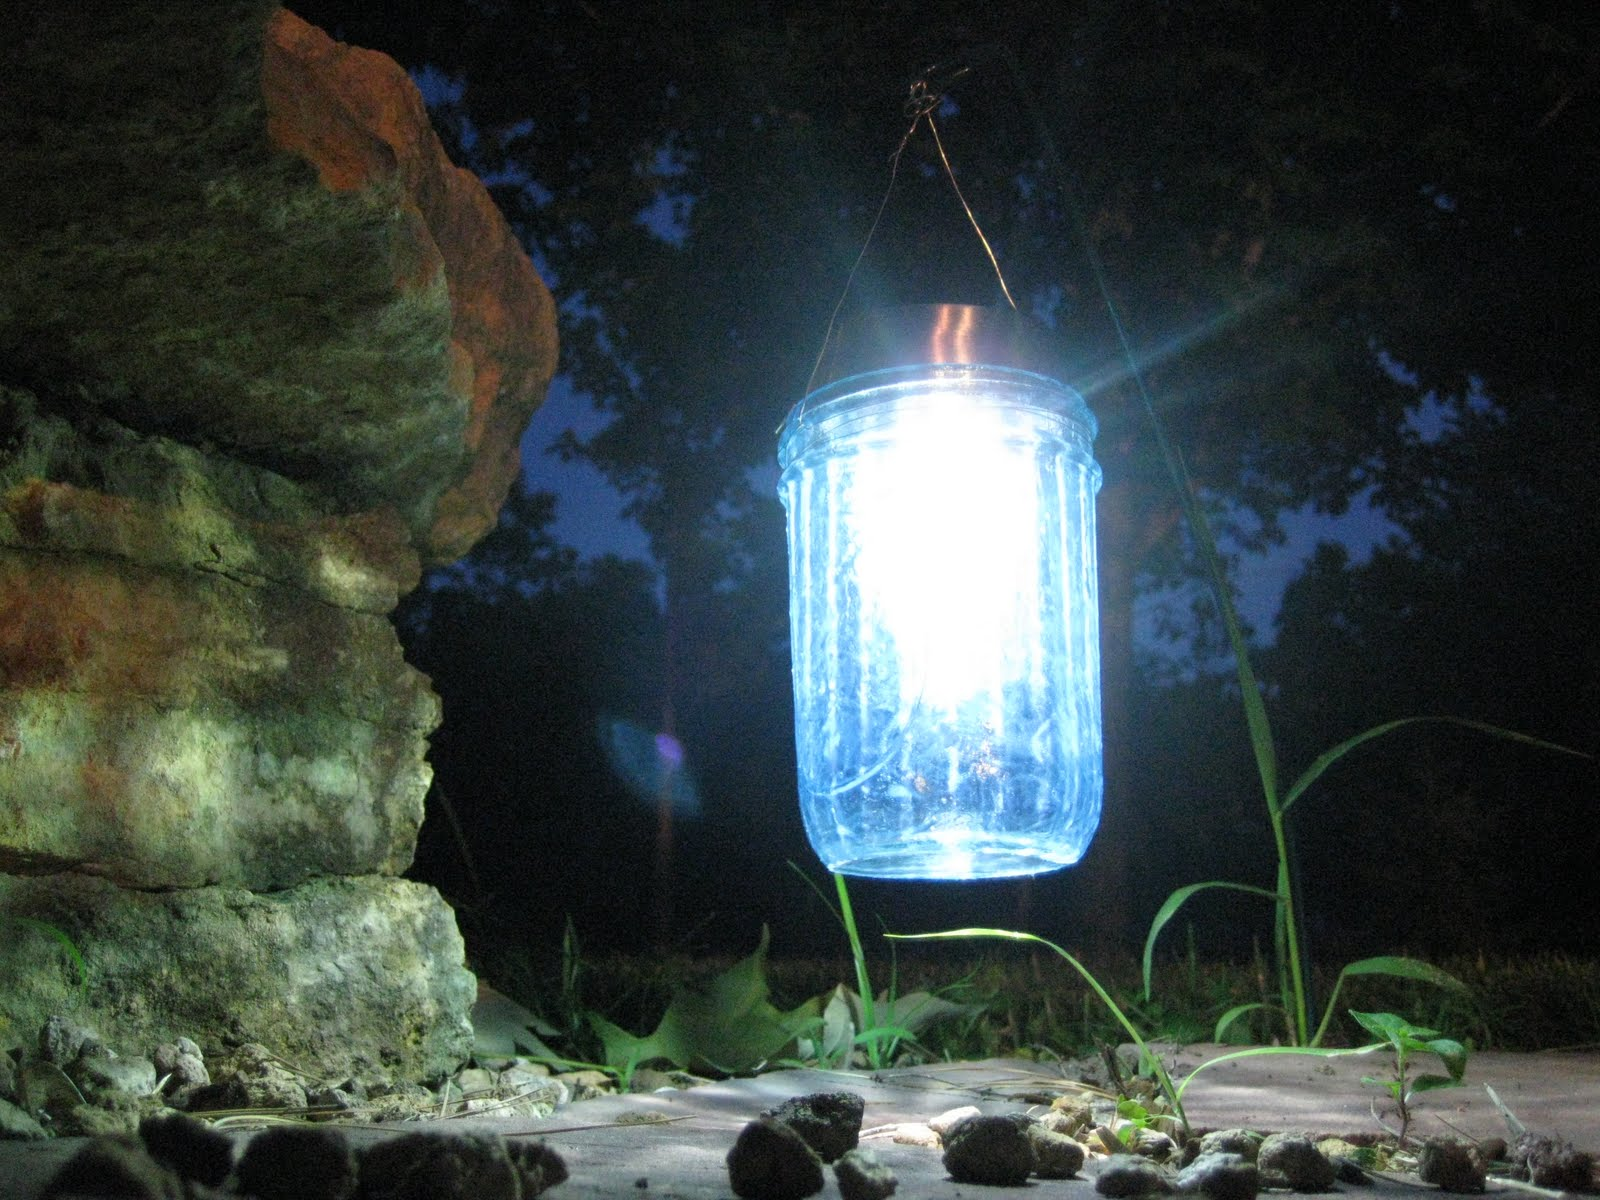 Solarlicht Garten Kreations Done By Hand Diy Mason Jar Solar Lights